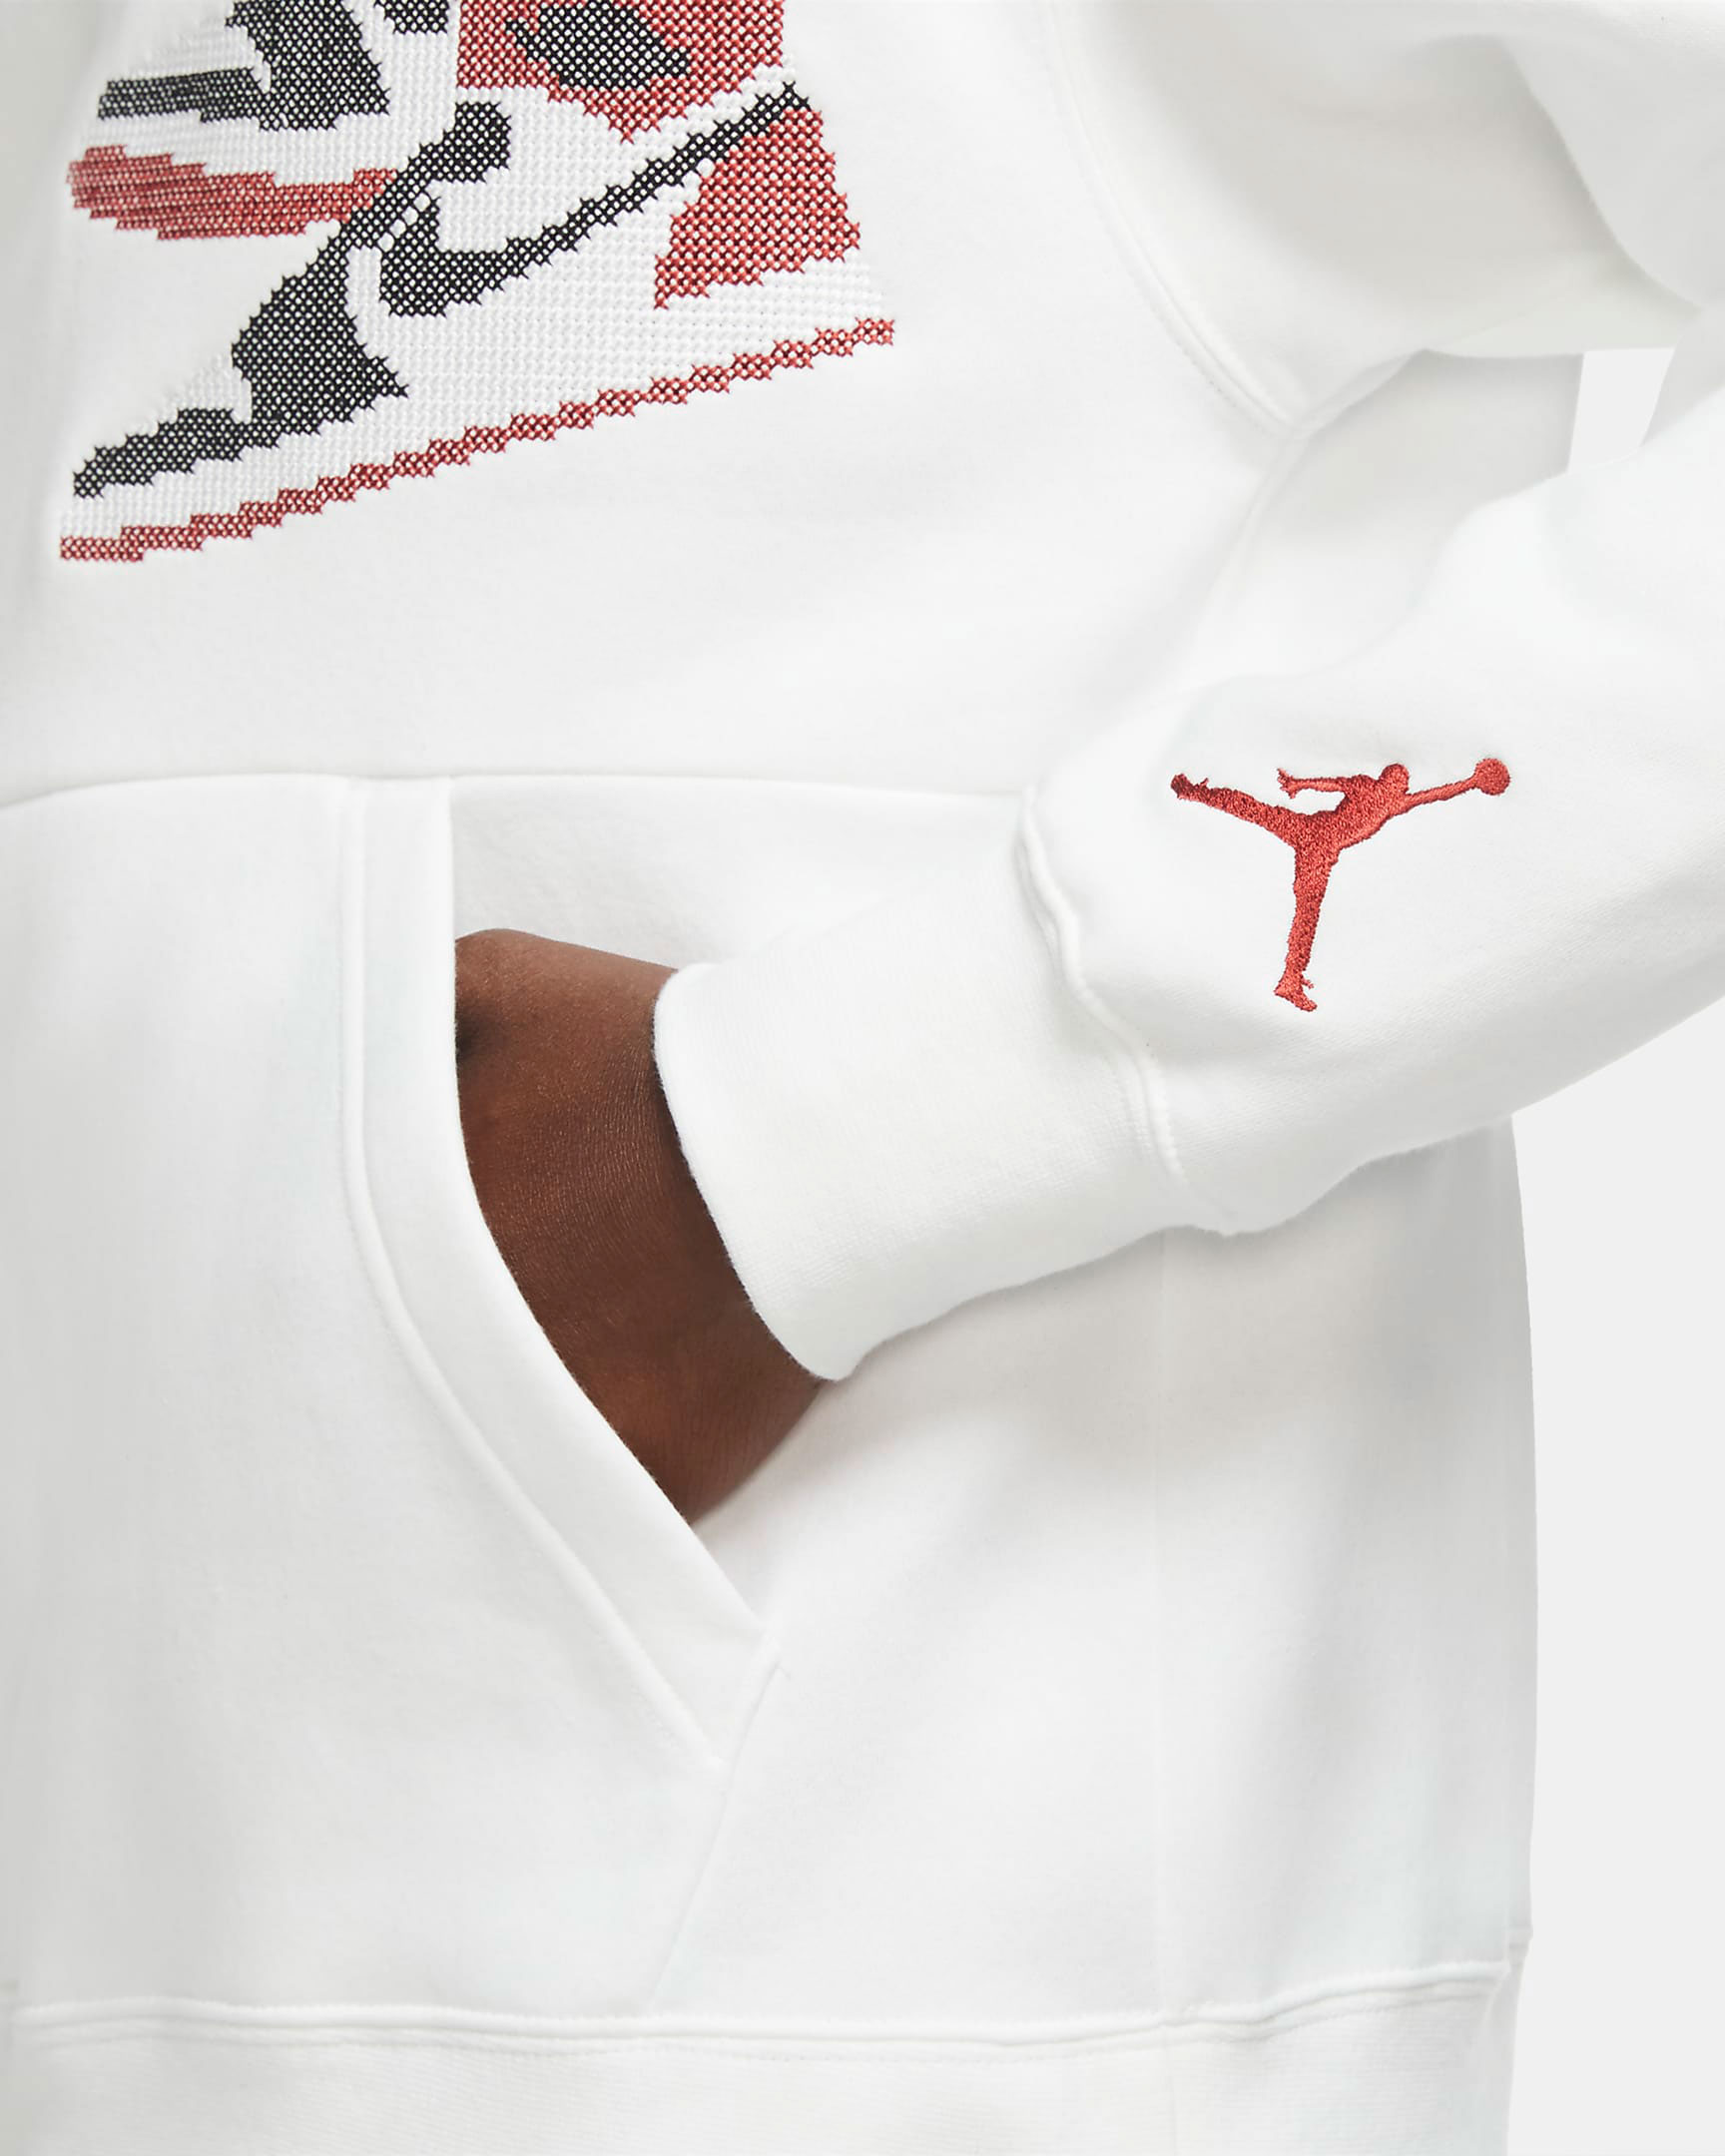 jordan-aj1-knit-stocking-holiday-hoodie-white-3